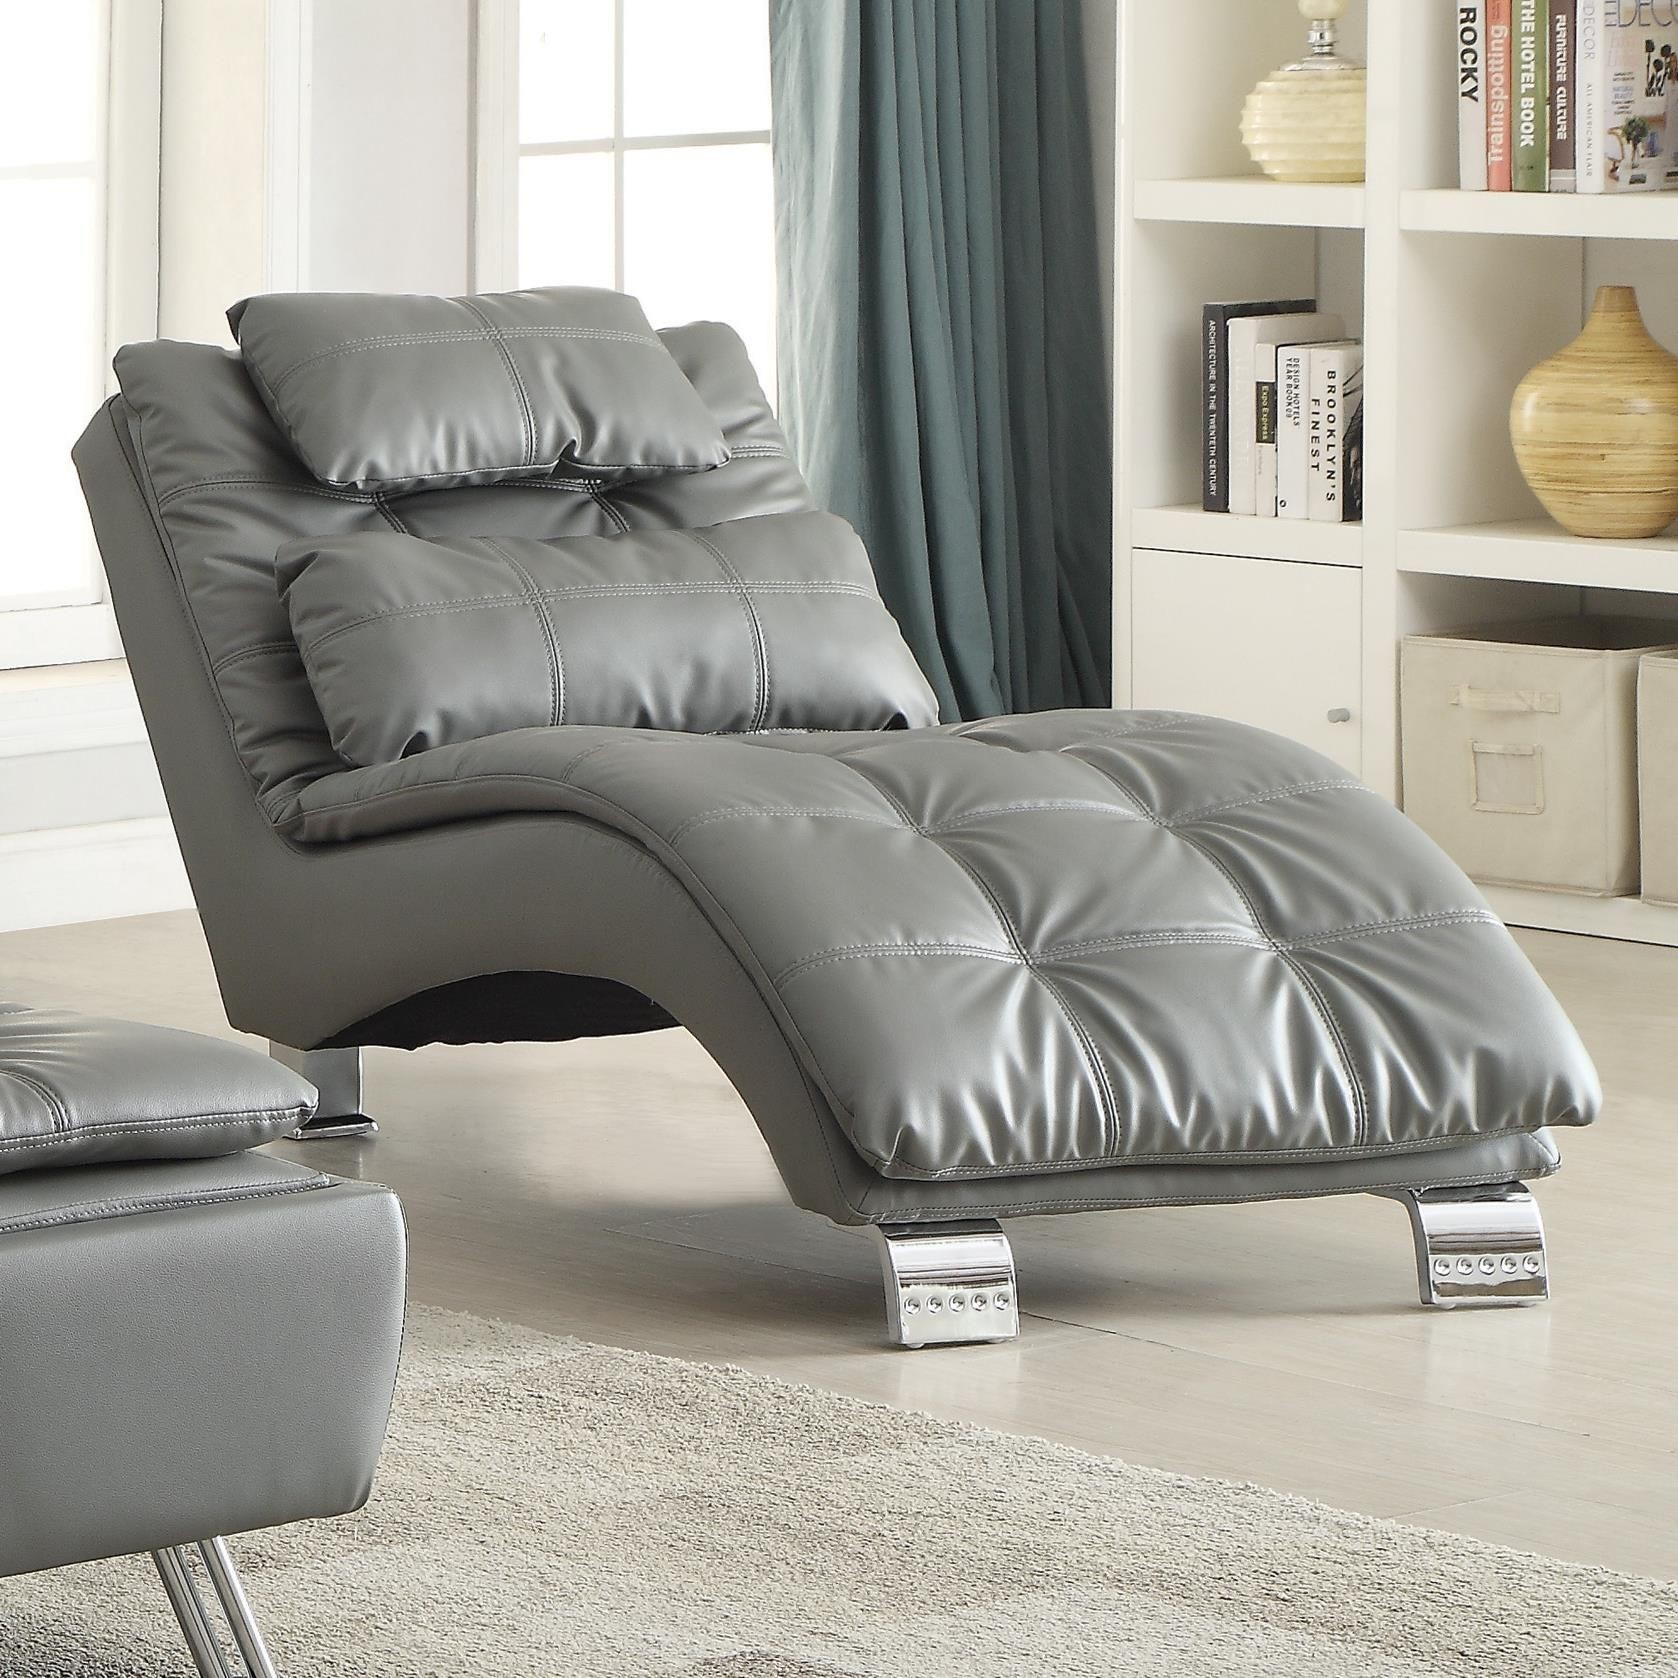 Dilleston Armless Living Room Chaise From Coaster 550029 Coleman Furniture